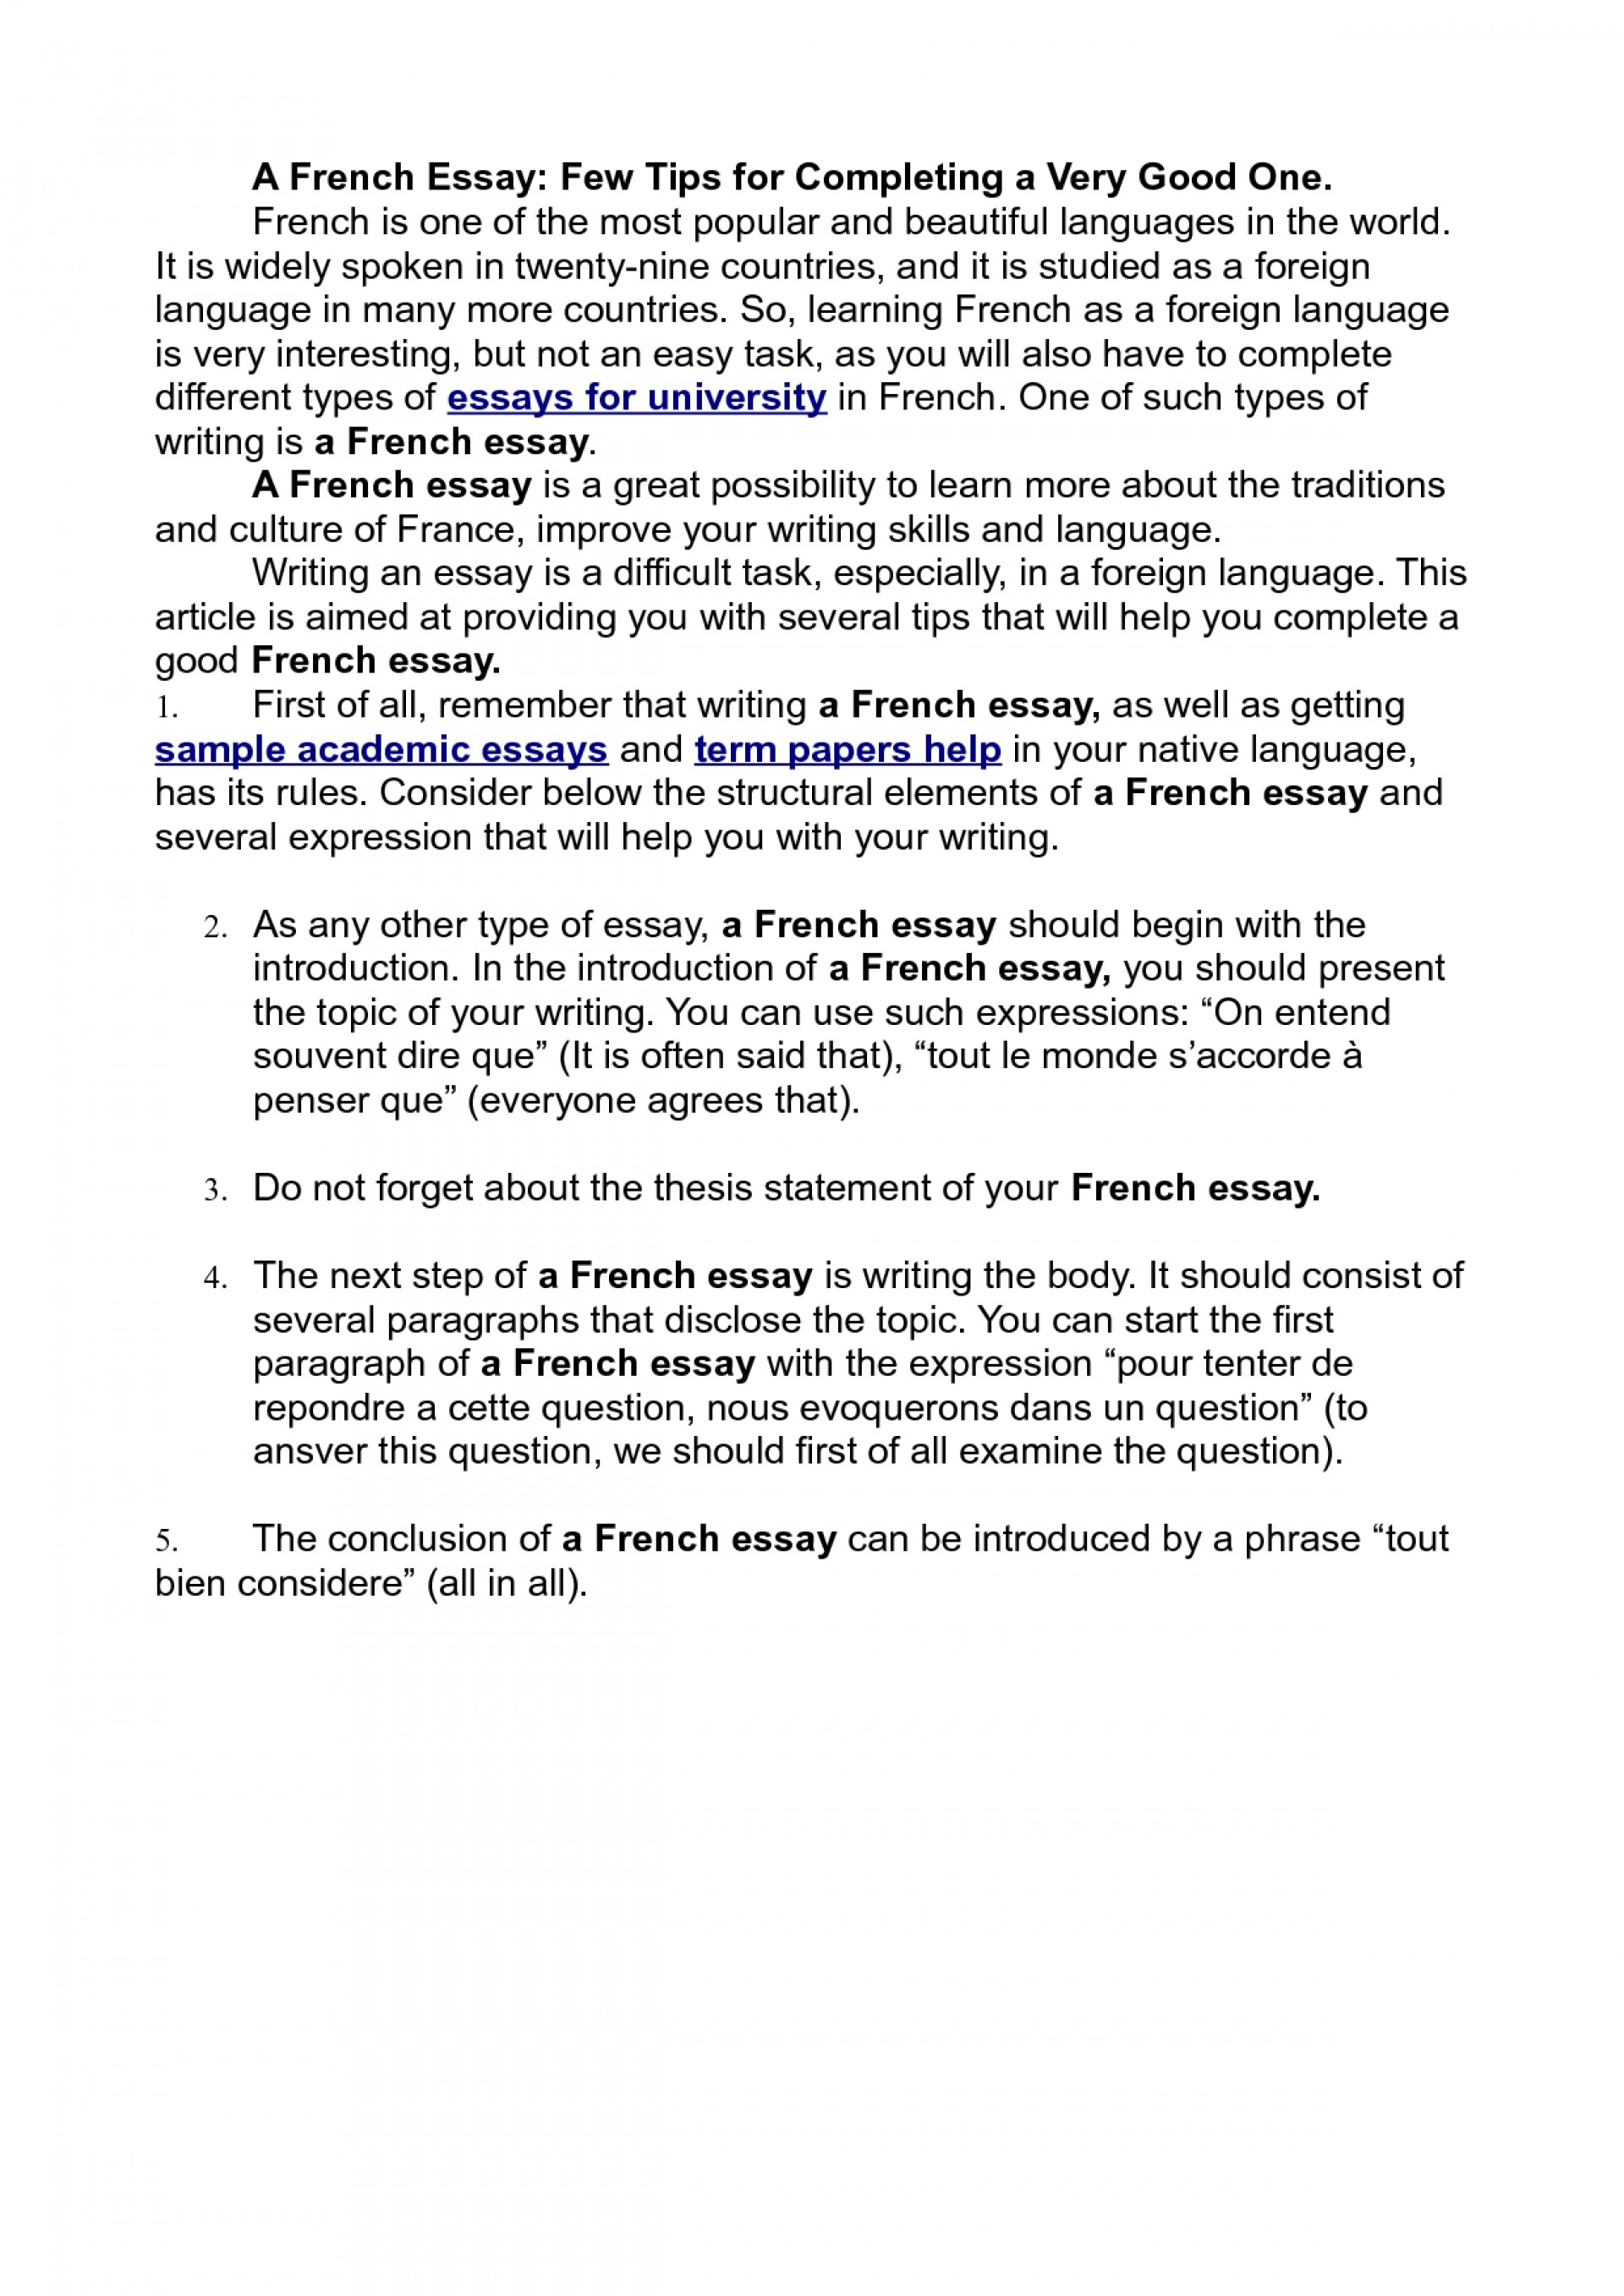 005 Essay In French Example Writing 416011 Frightening Small On My Family Language About Myself 1920